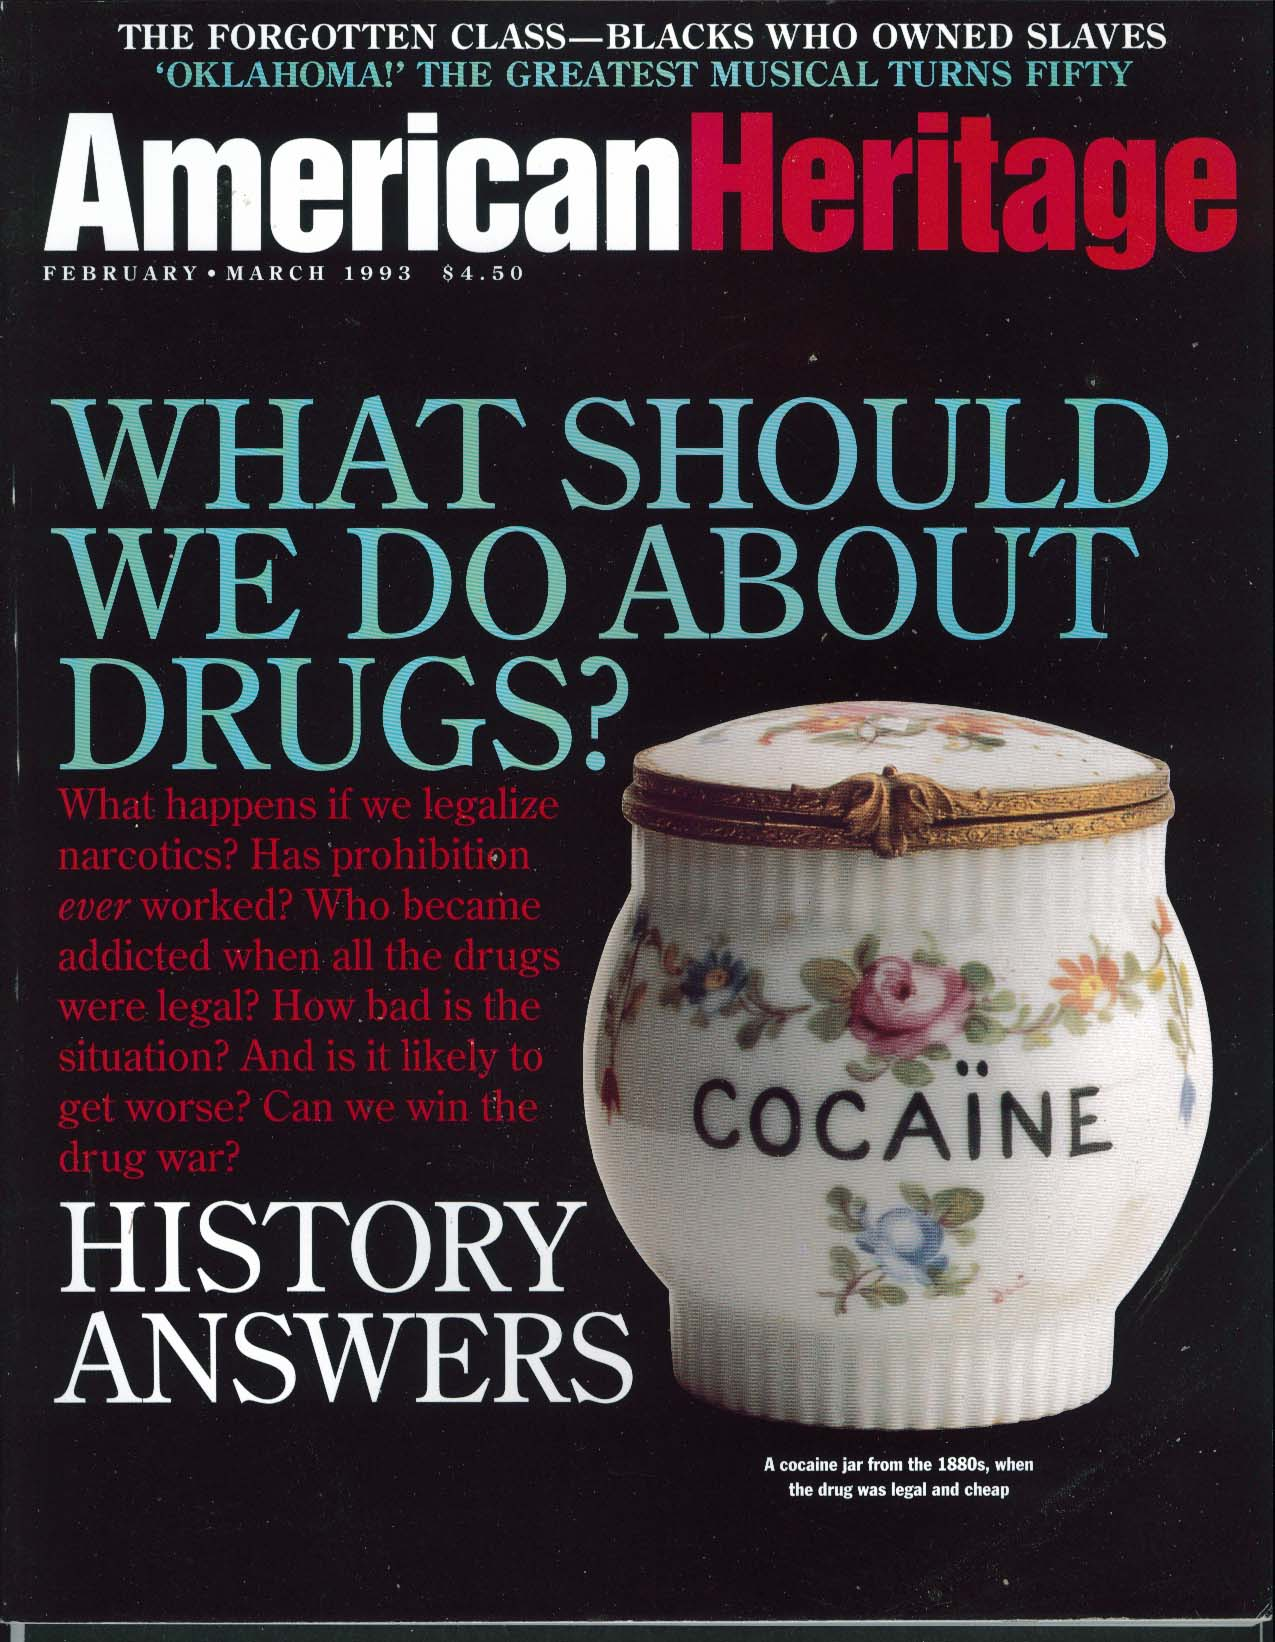 AMERICAN HERITAGE Narcotic Prohibition Slavery 2/3 1993